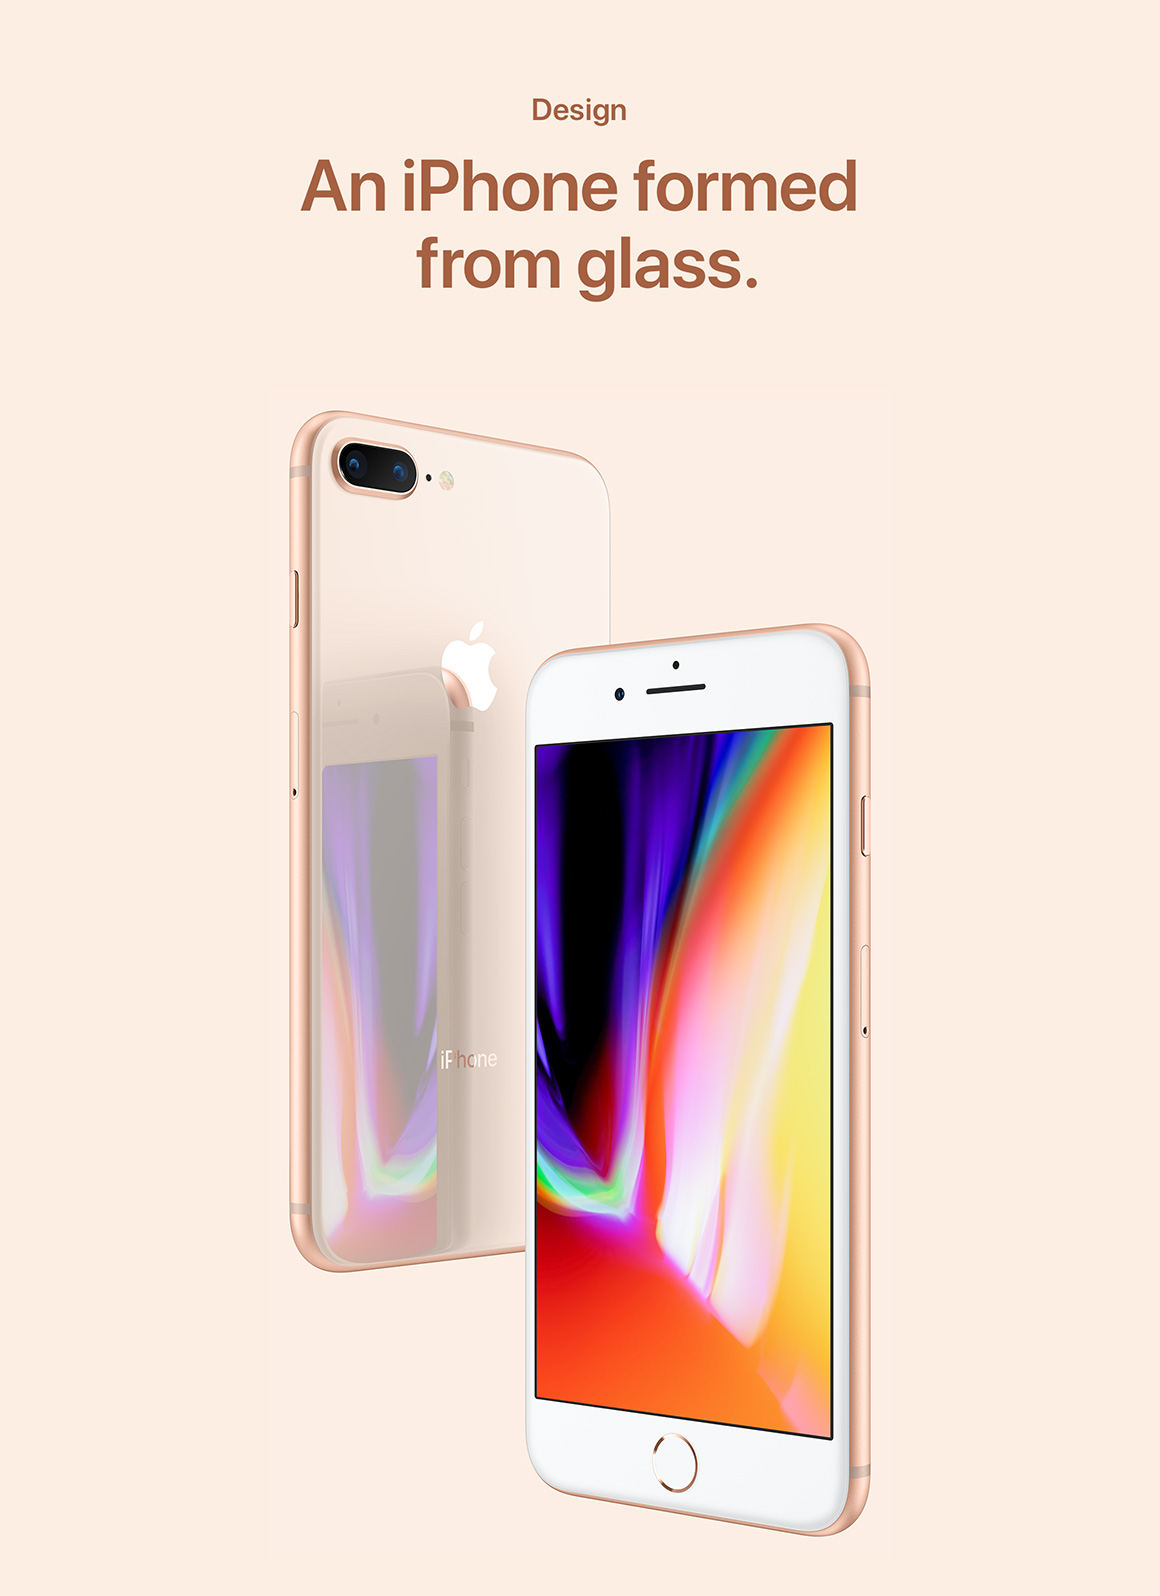 An iPhone made from glass